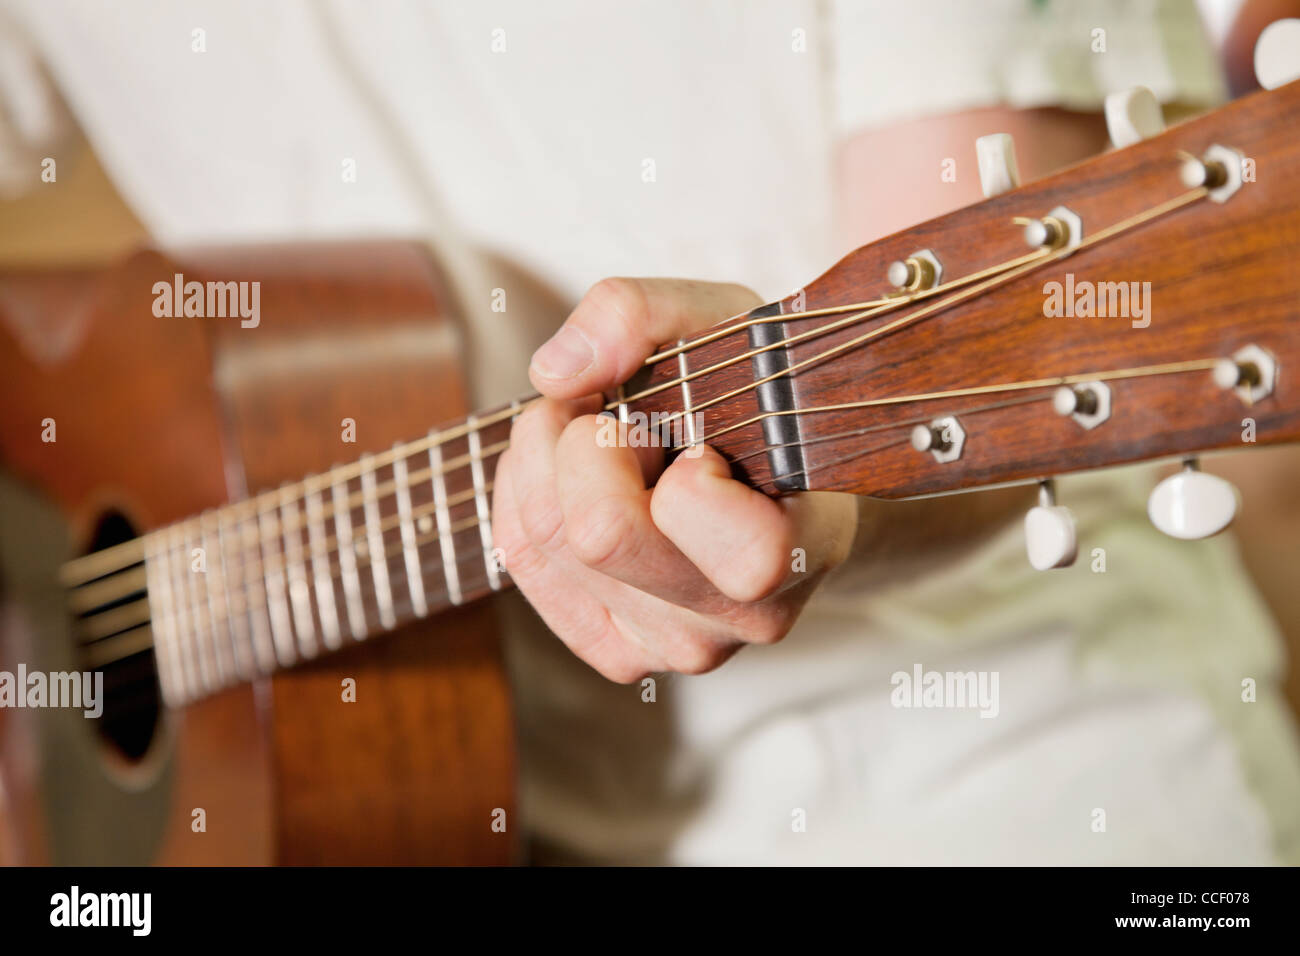 Close-up view of man's hand playing guitar - Stock Image